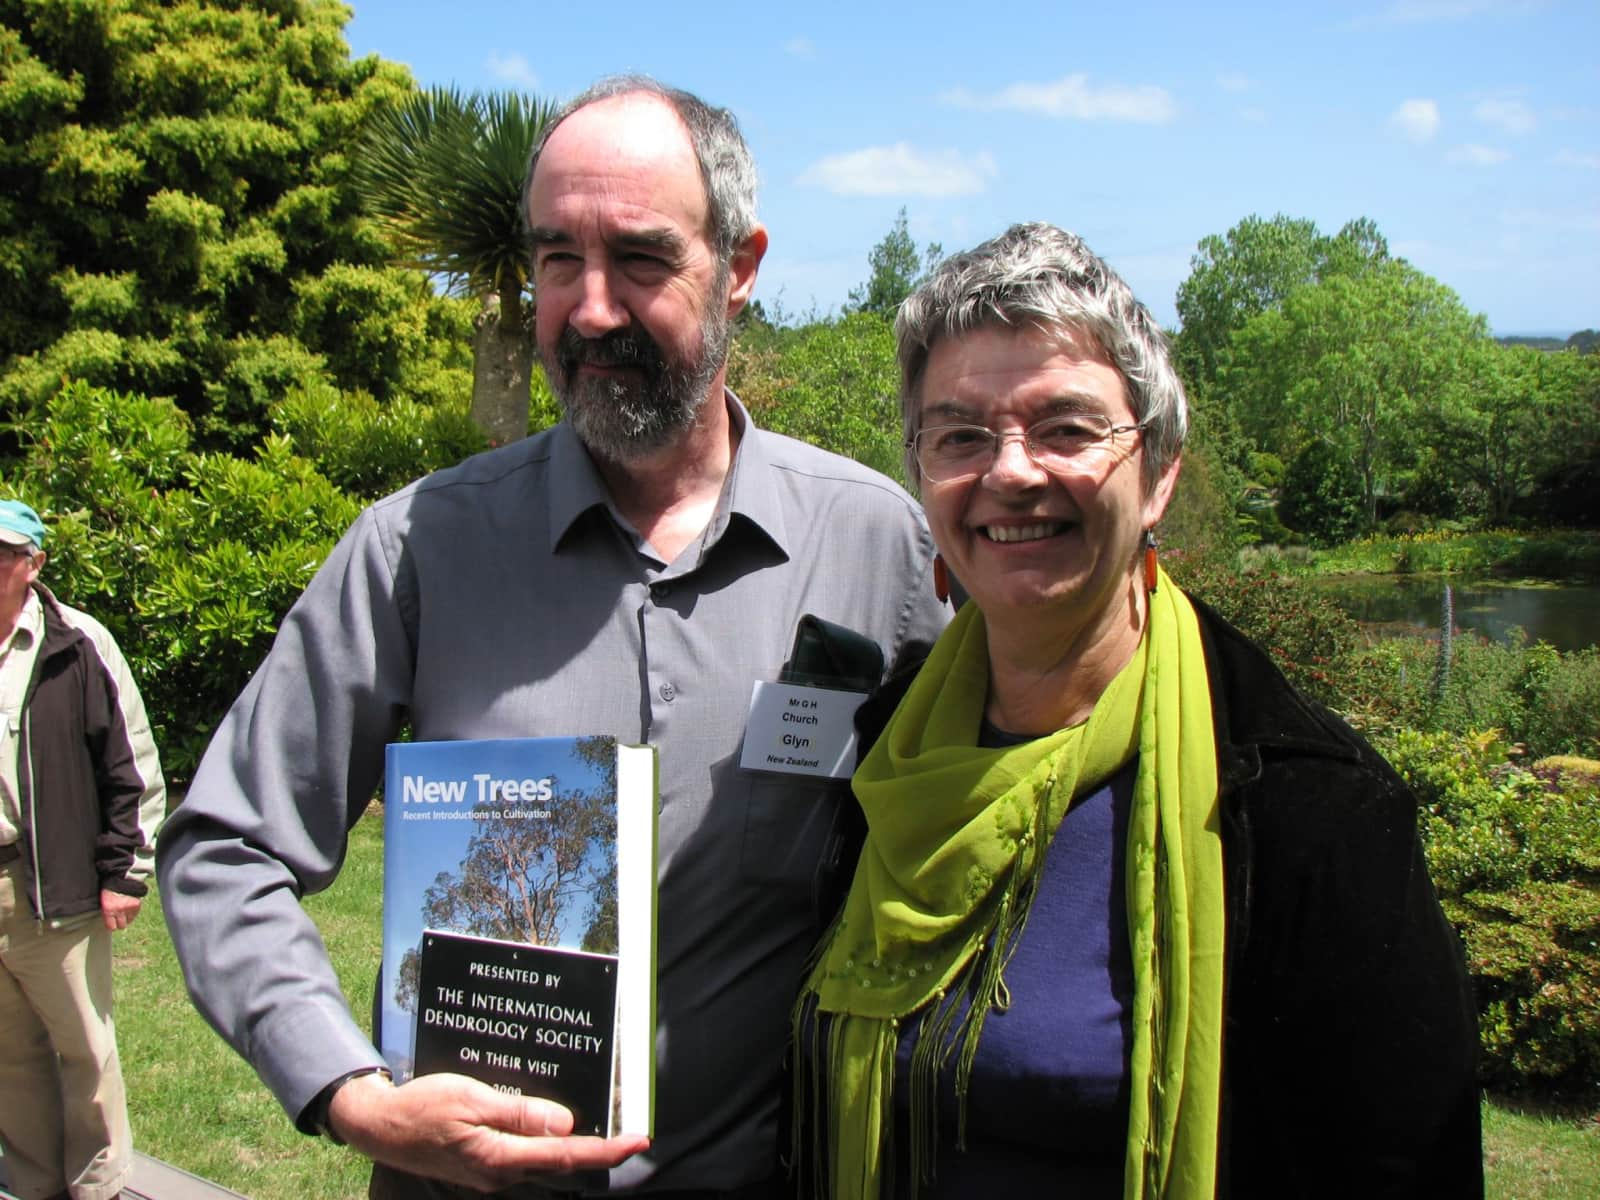 Glyn & Gail from New Plymouth, New Zealand